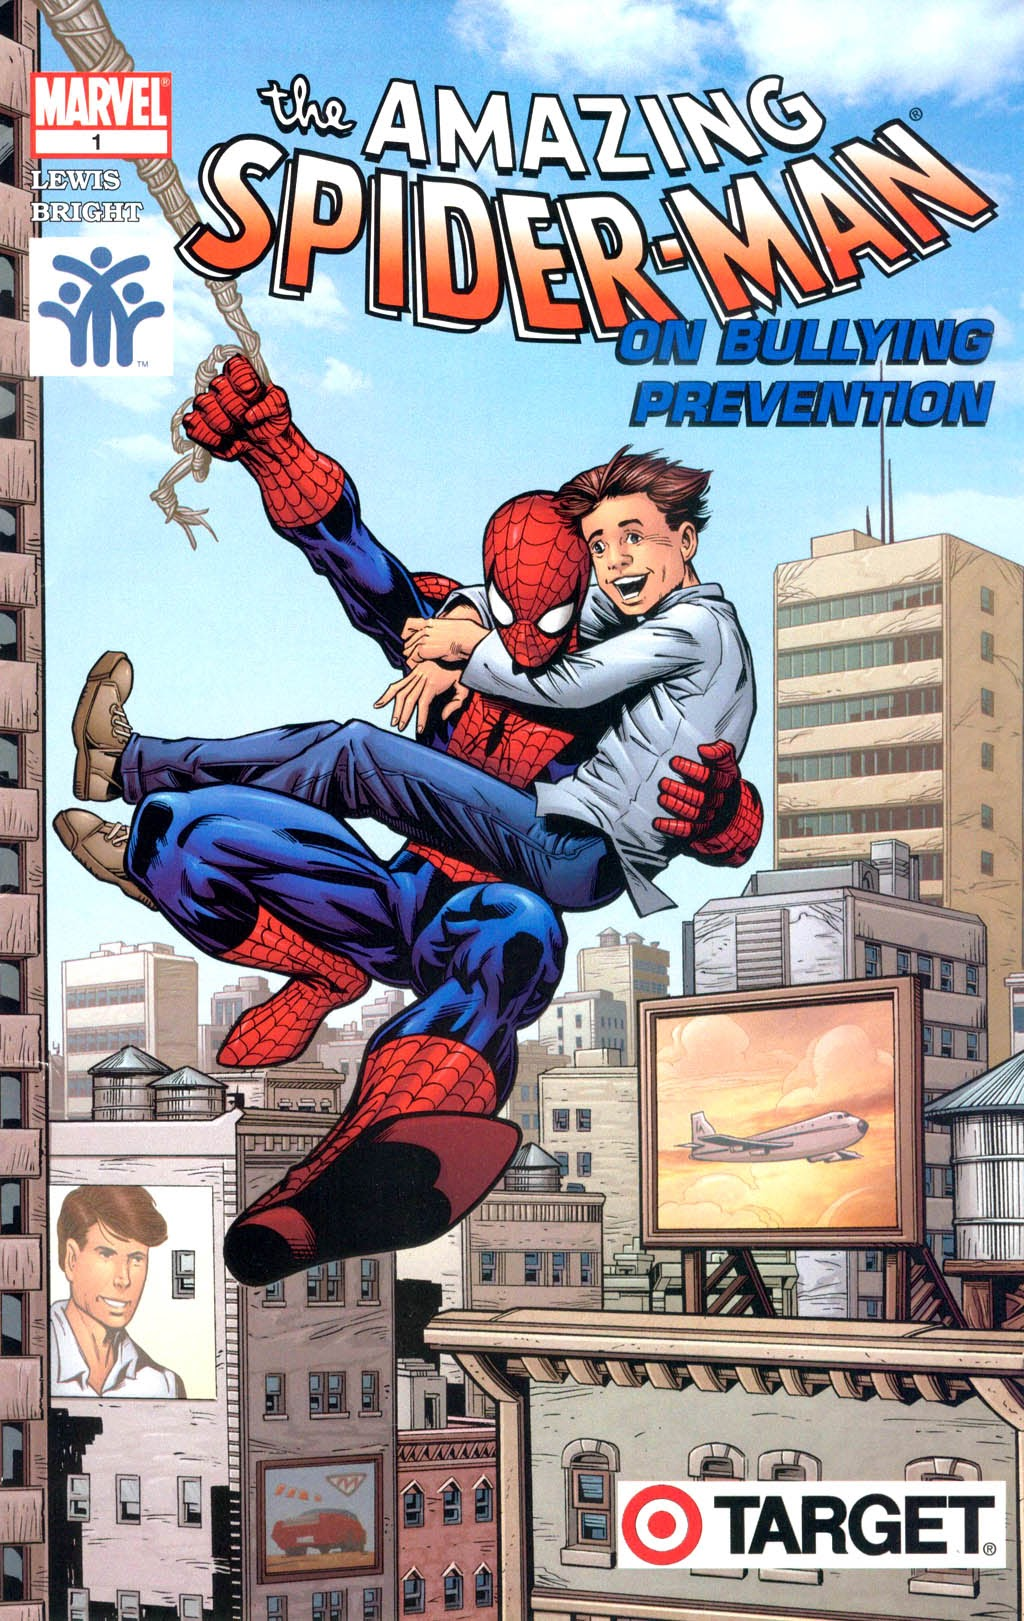 Prevent Child Abuse America Presents: Amazing Spider-Man on Bullying Prevention Full Page 1